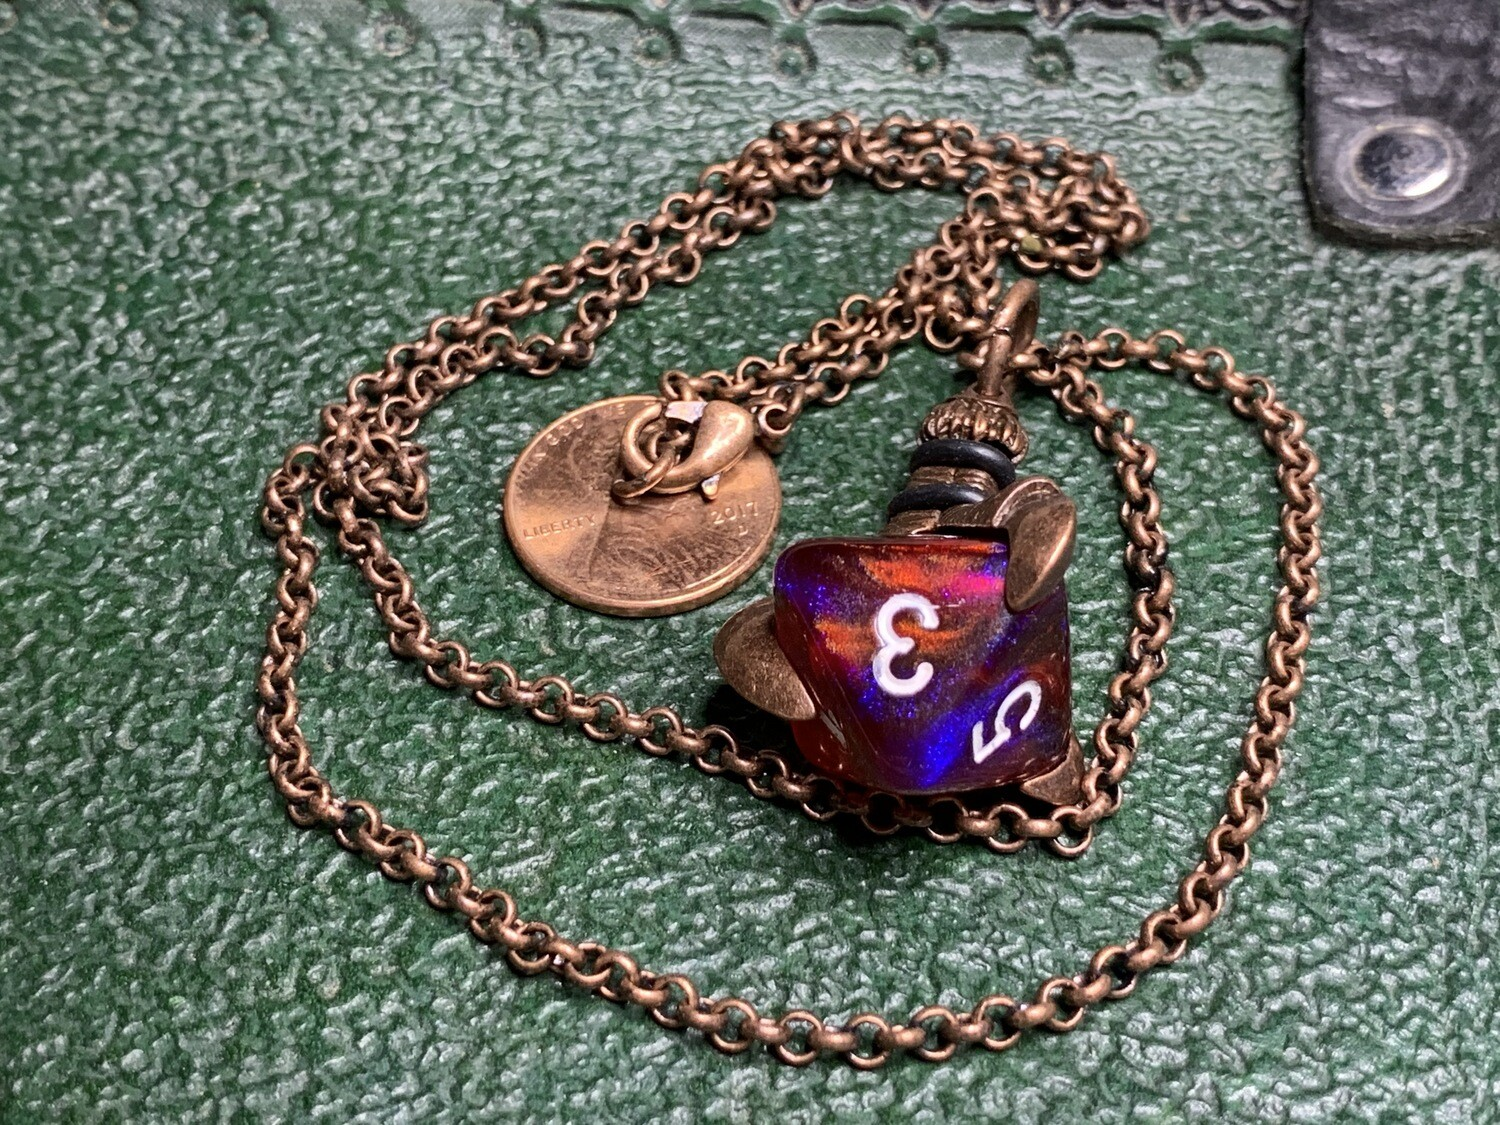 Chessex 16mm Dice Pendant Old Copper Butterfly D8 Die Tabletop RPG Gaming